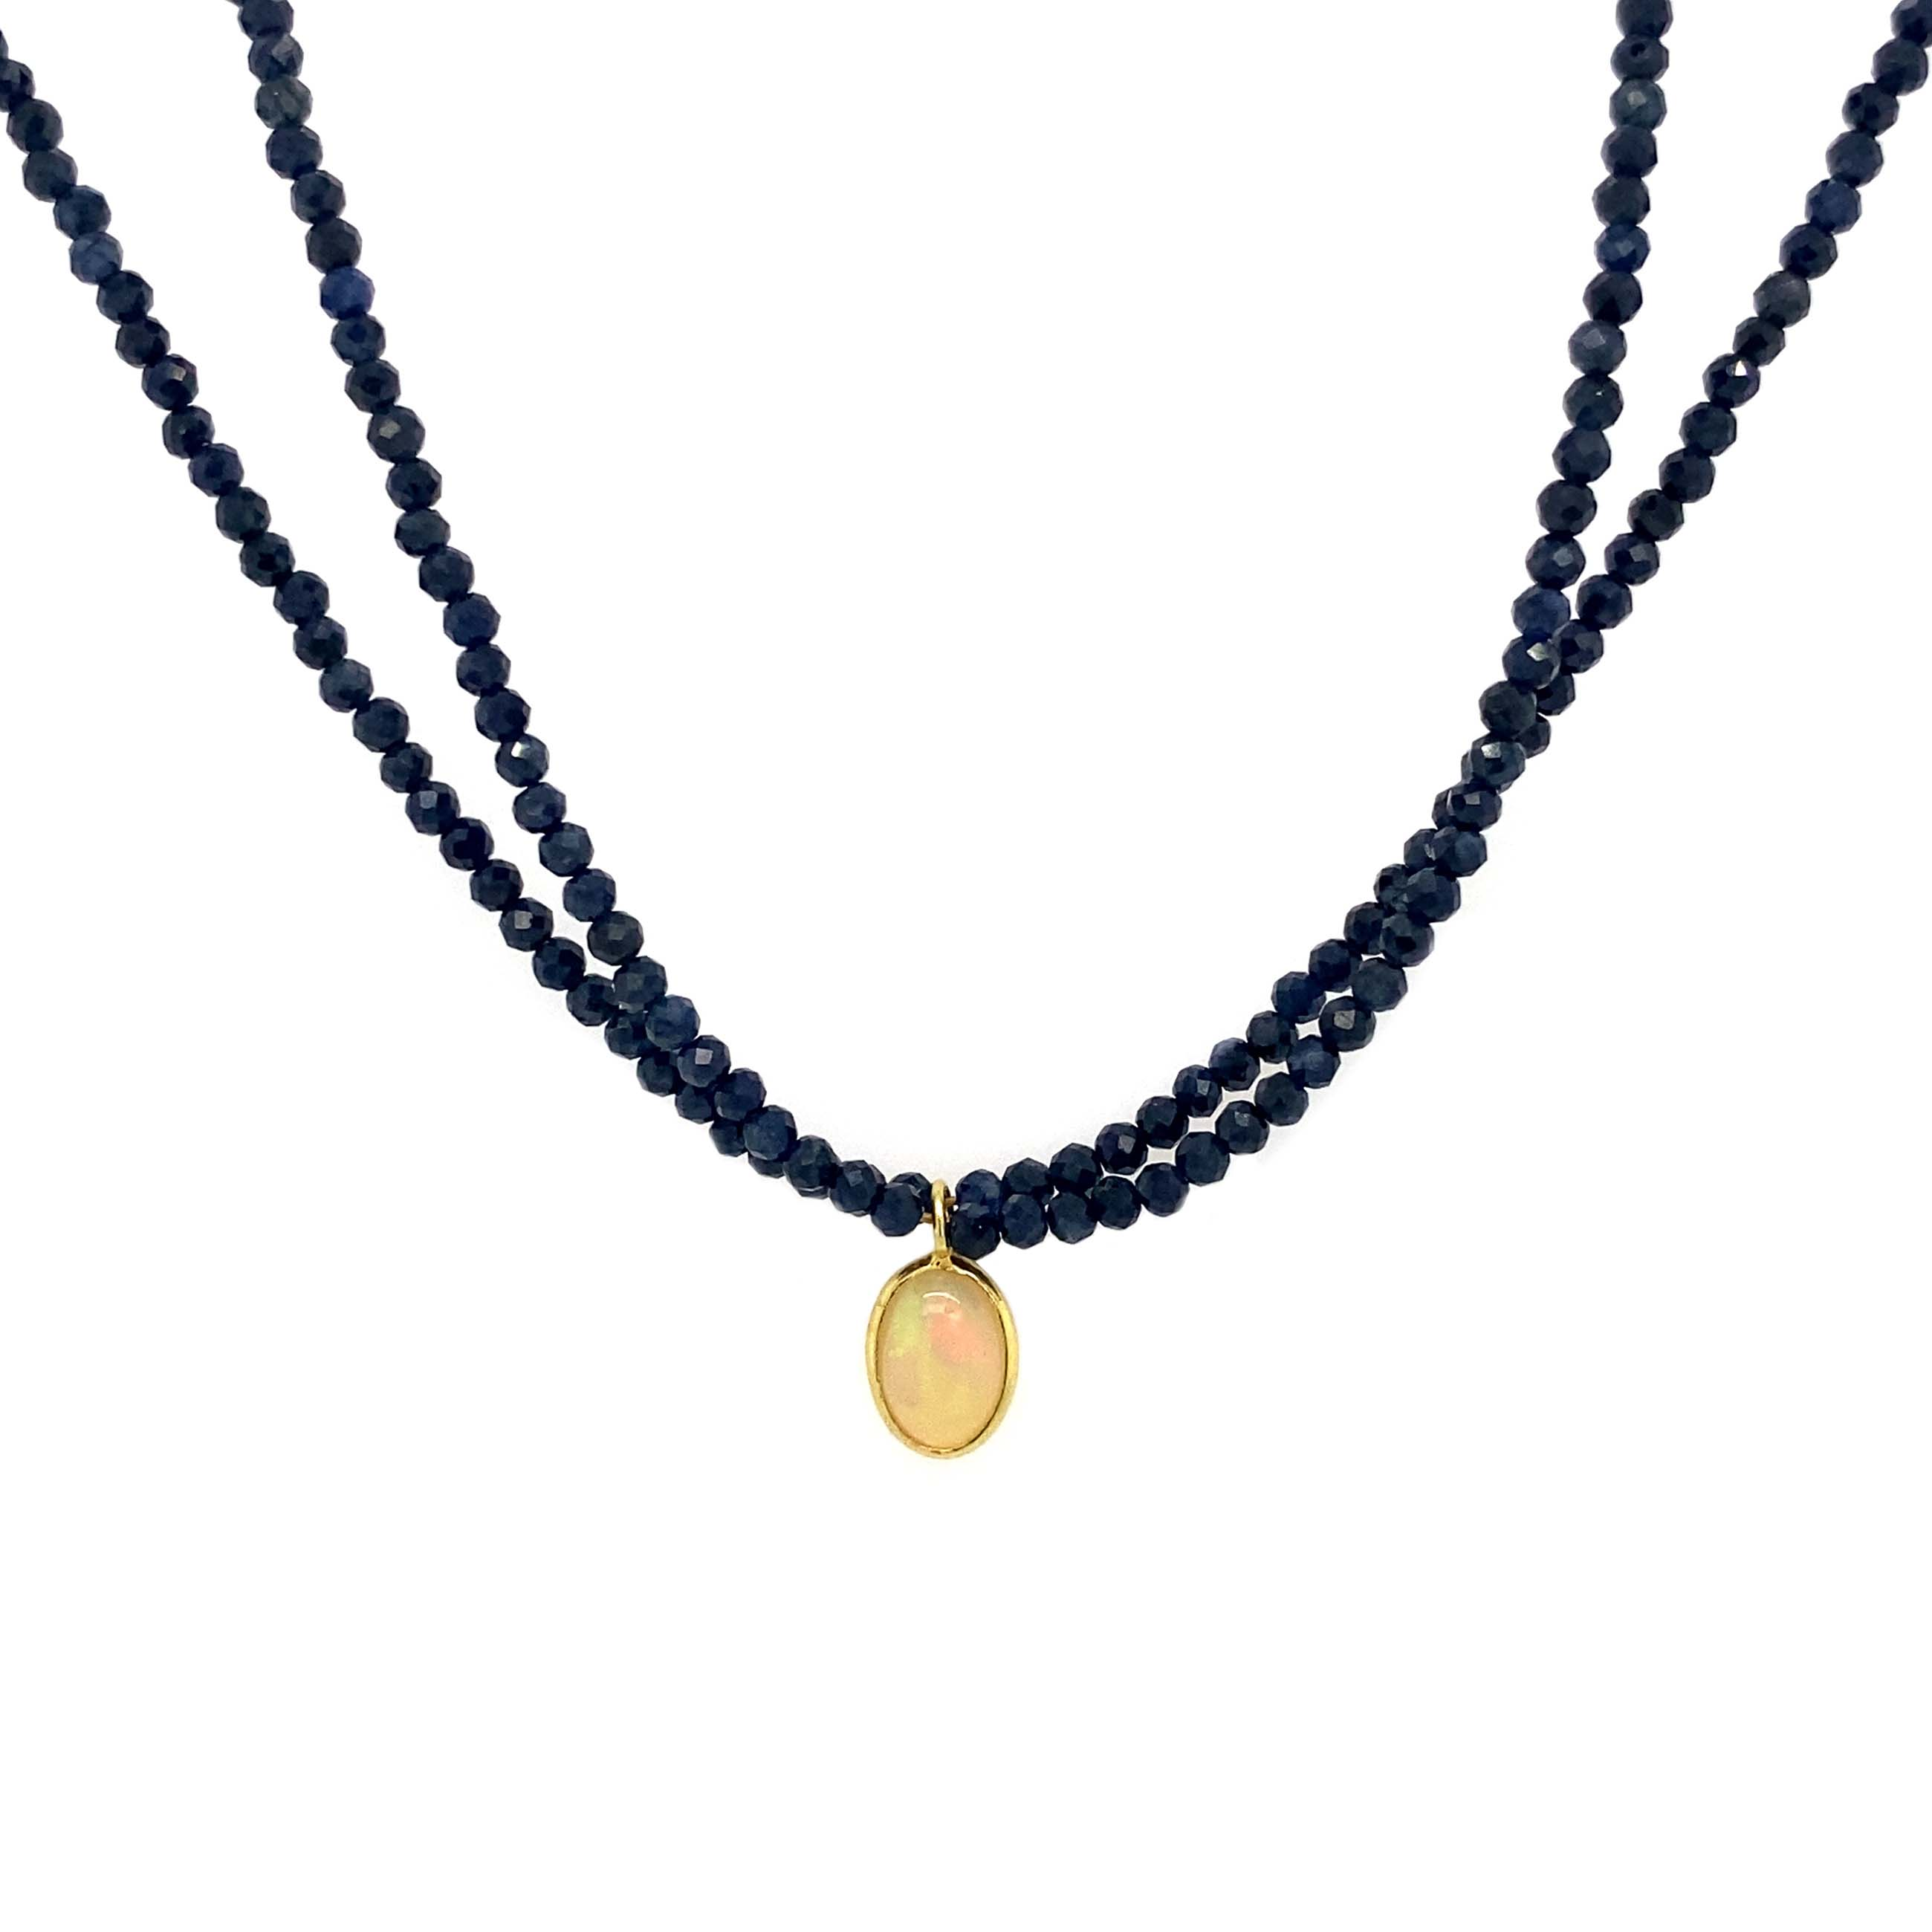 Gemstone Necklace, Opal and Sapphire Necklace